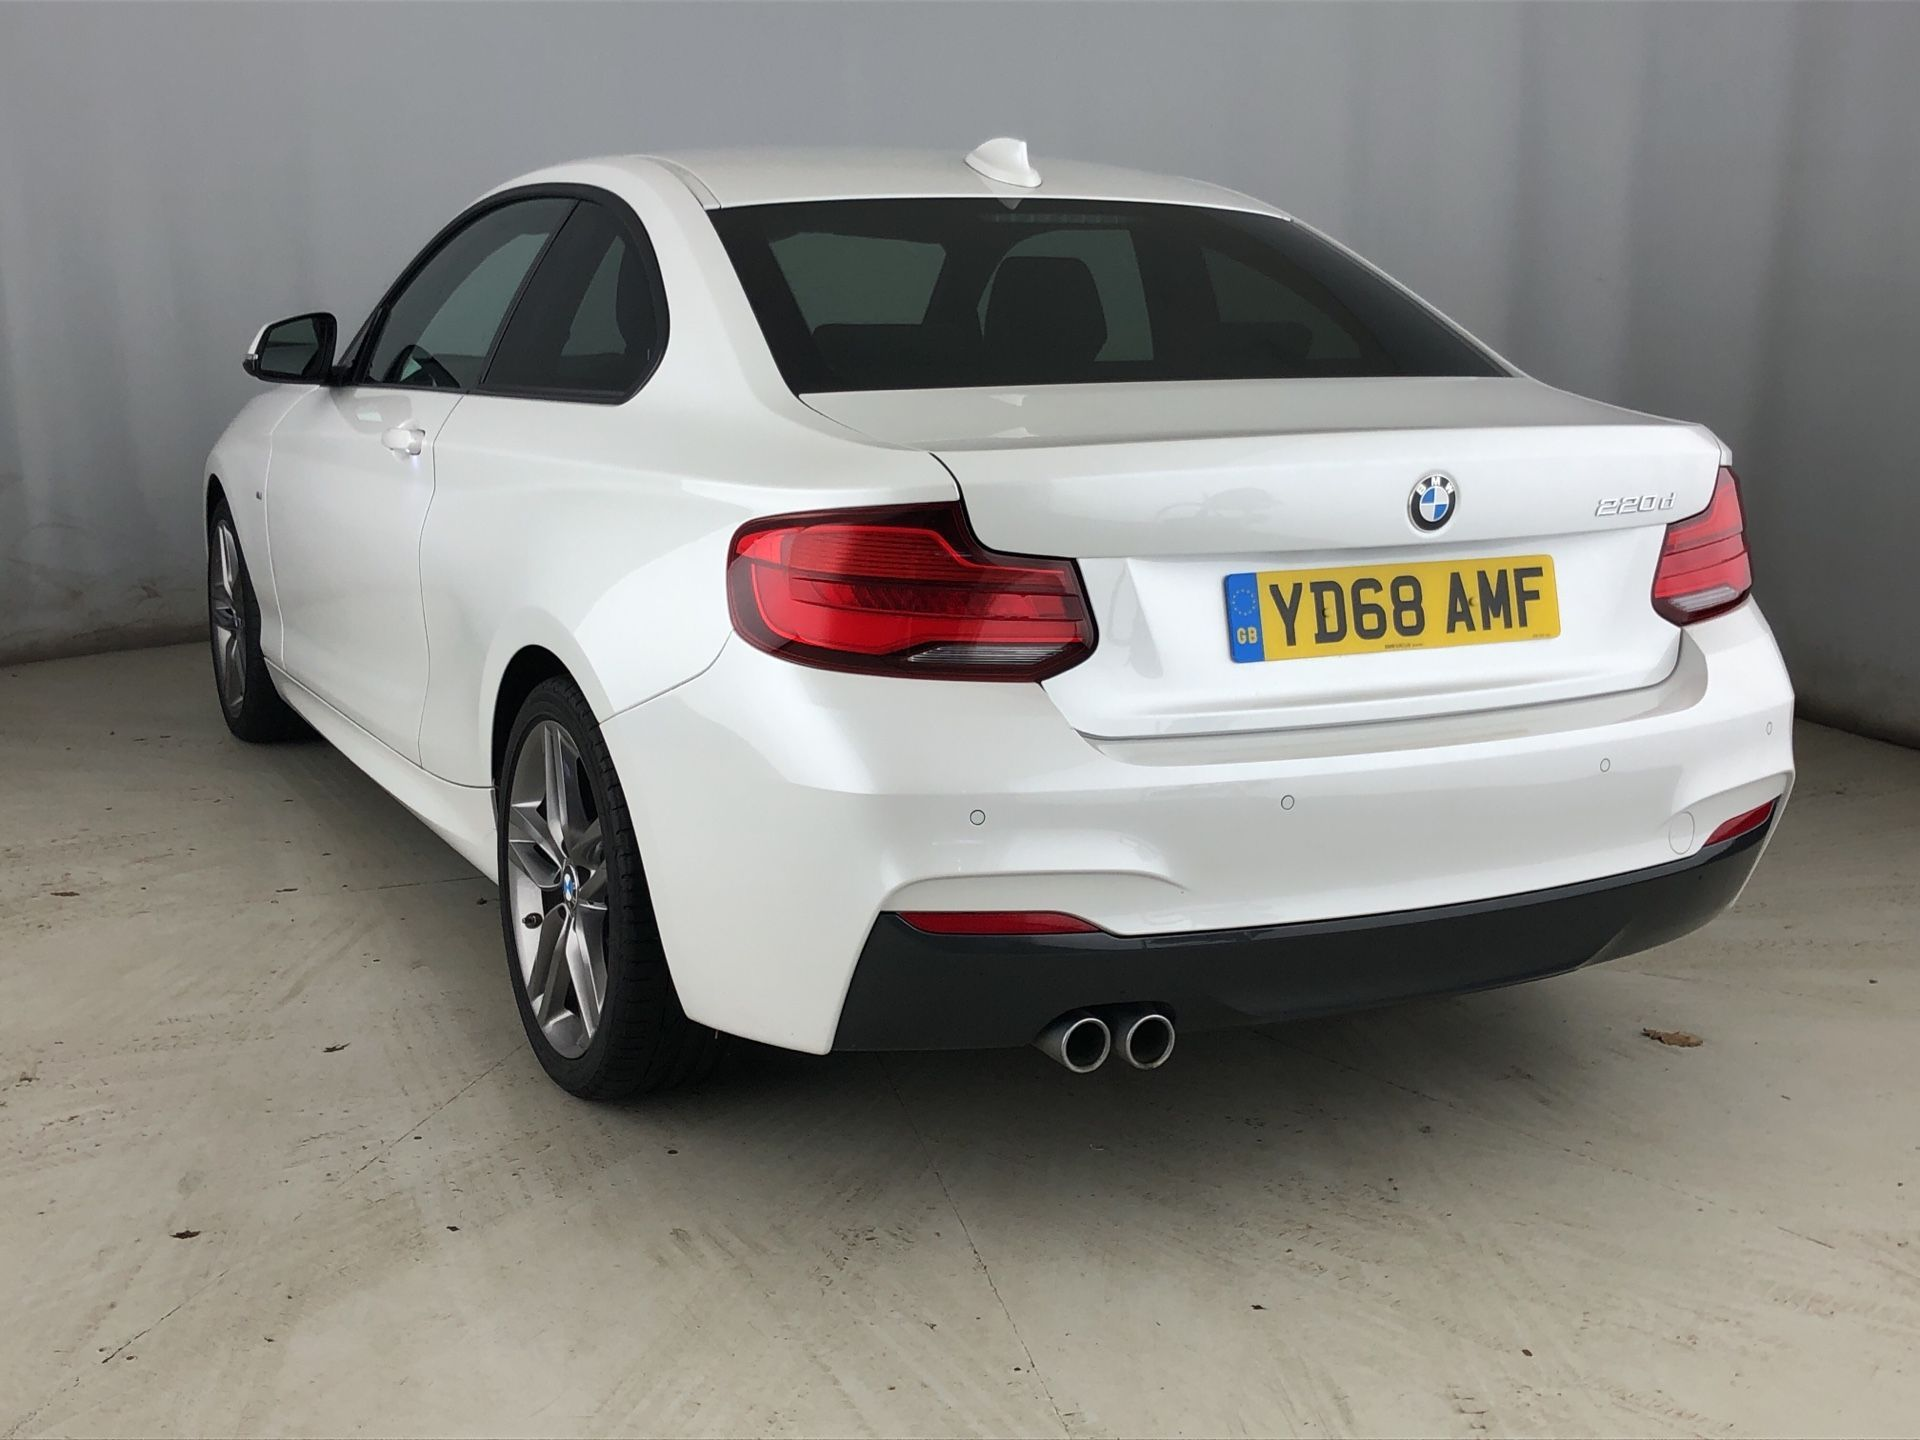 Image 2 - BMW 220d M Sport Coupe (YD68AMF)